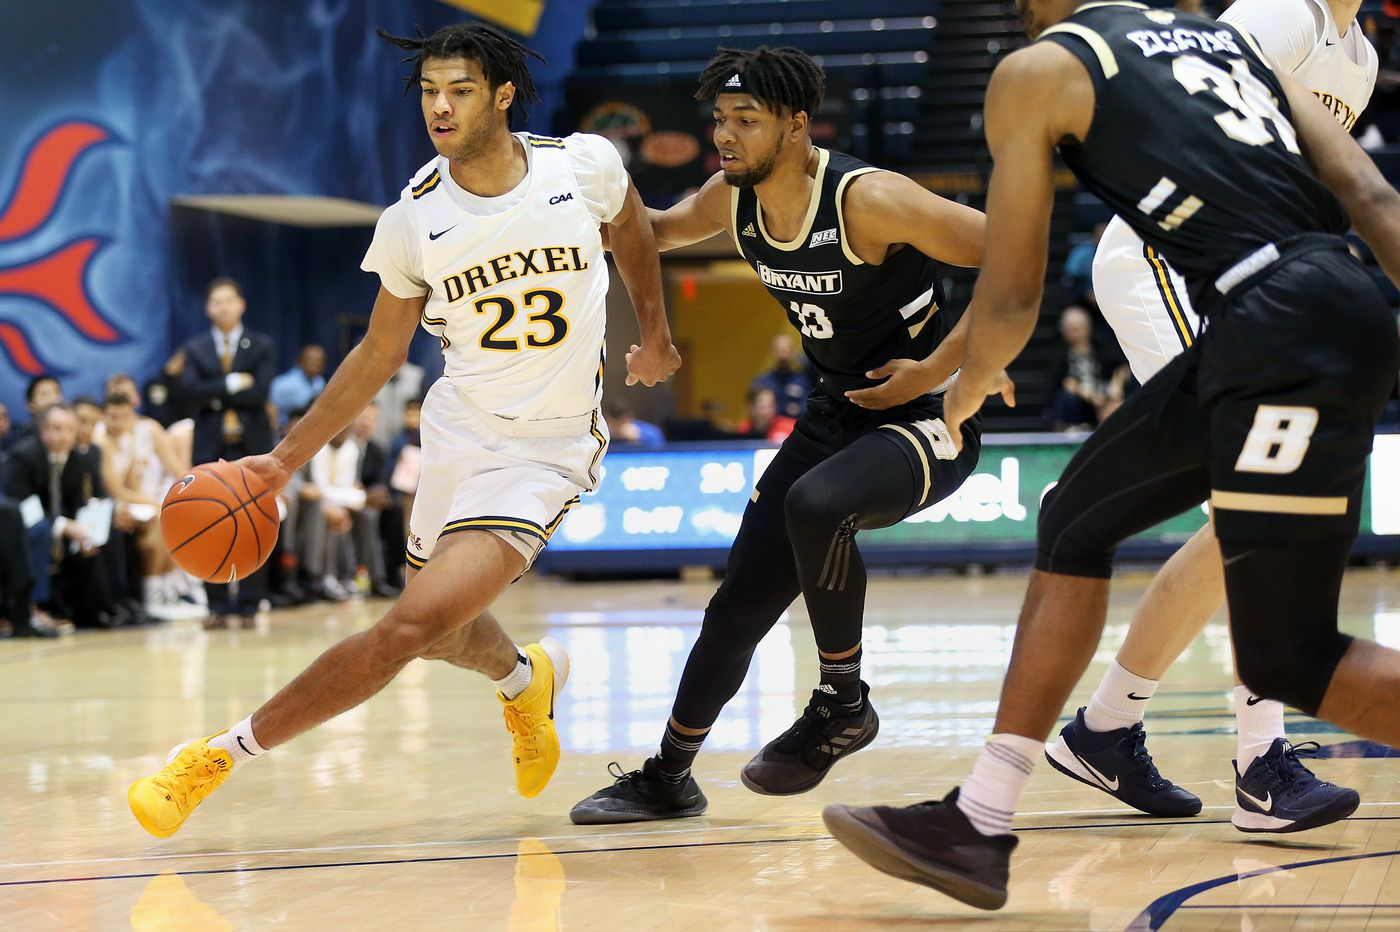 For Drexel freshman T.J. Bickerstaff, basketball is a generational family tradition